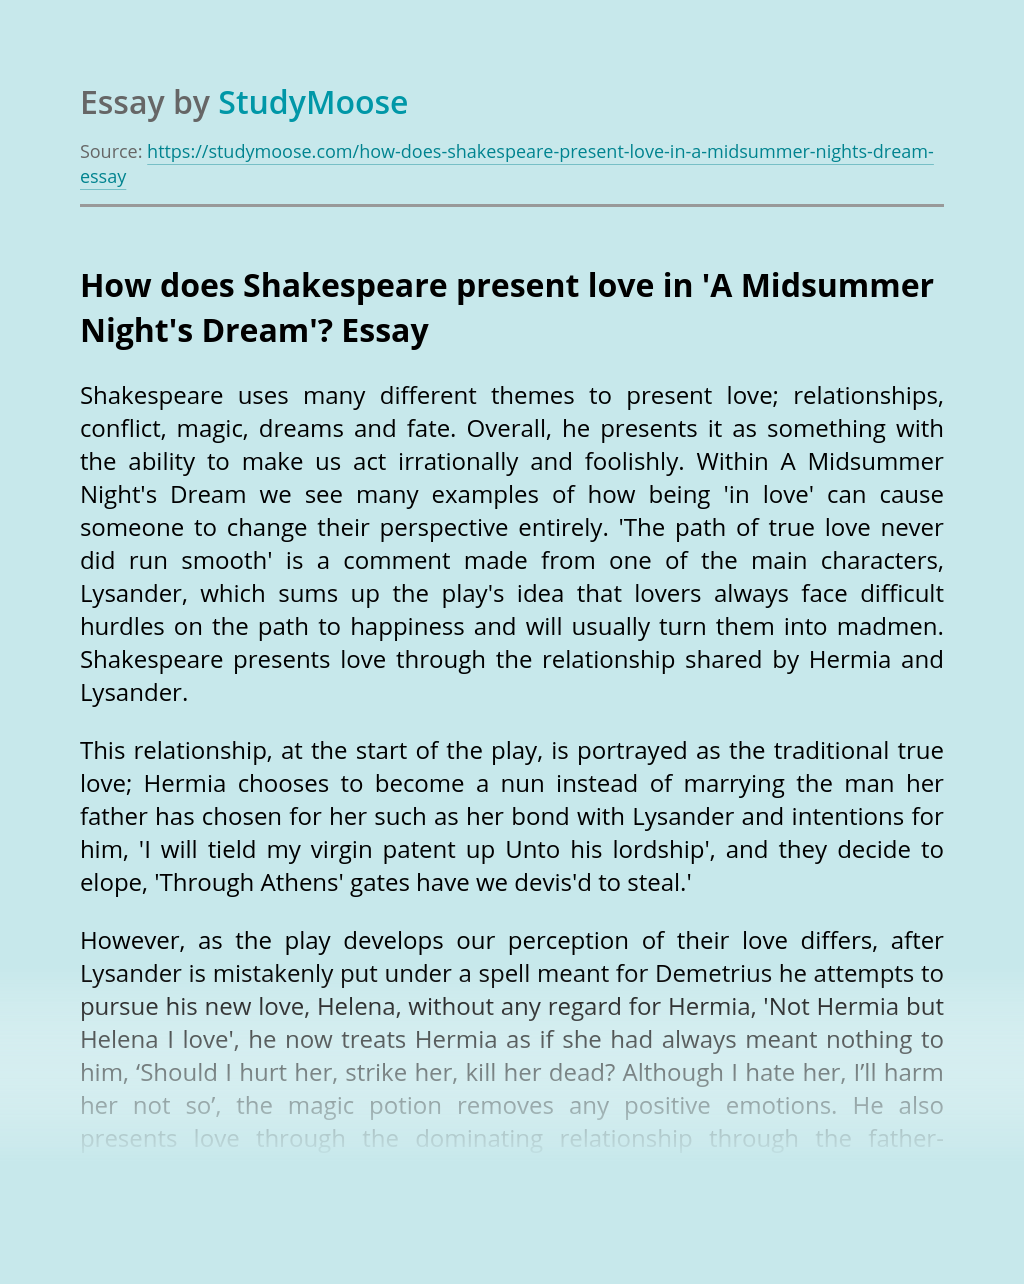 How does Shakespeare present love in 'A Midsummer Night's Dream'?